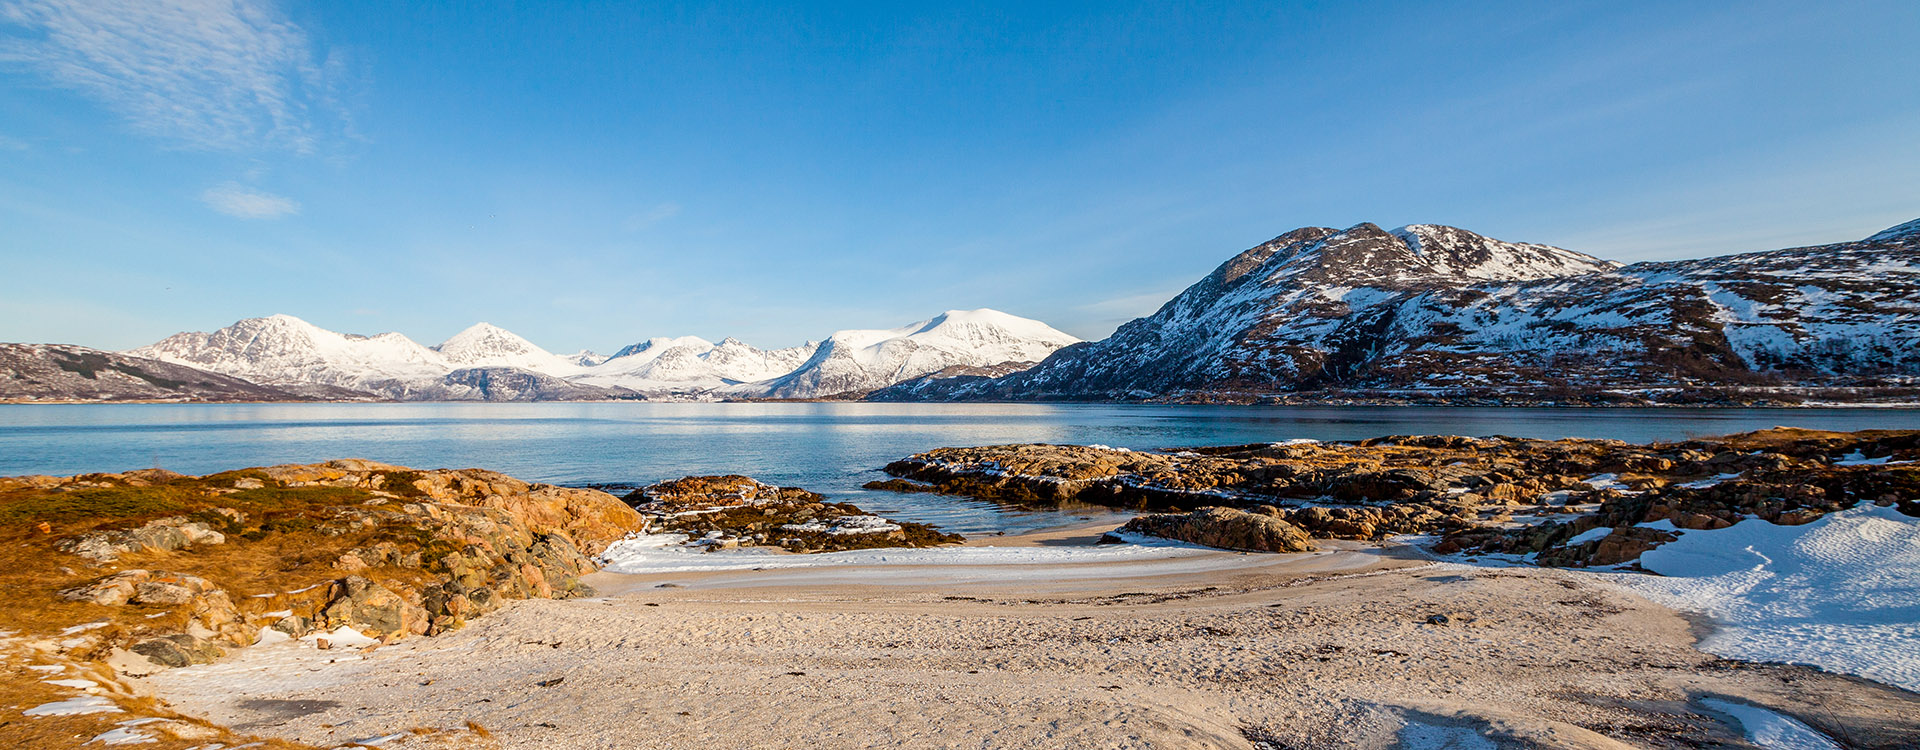 Snowy mountains and bright blue sky in the background. Spring landscape with melting snow and ice. Arctic Circle, Sommaroy, Norway